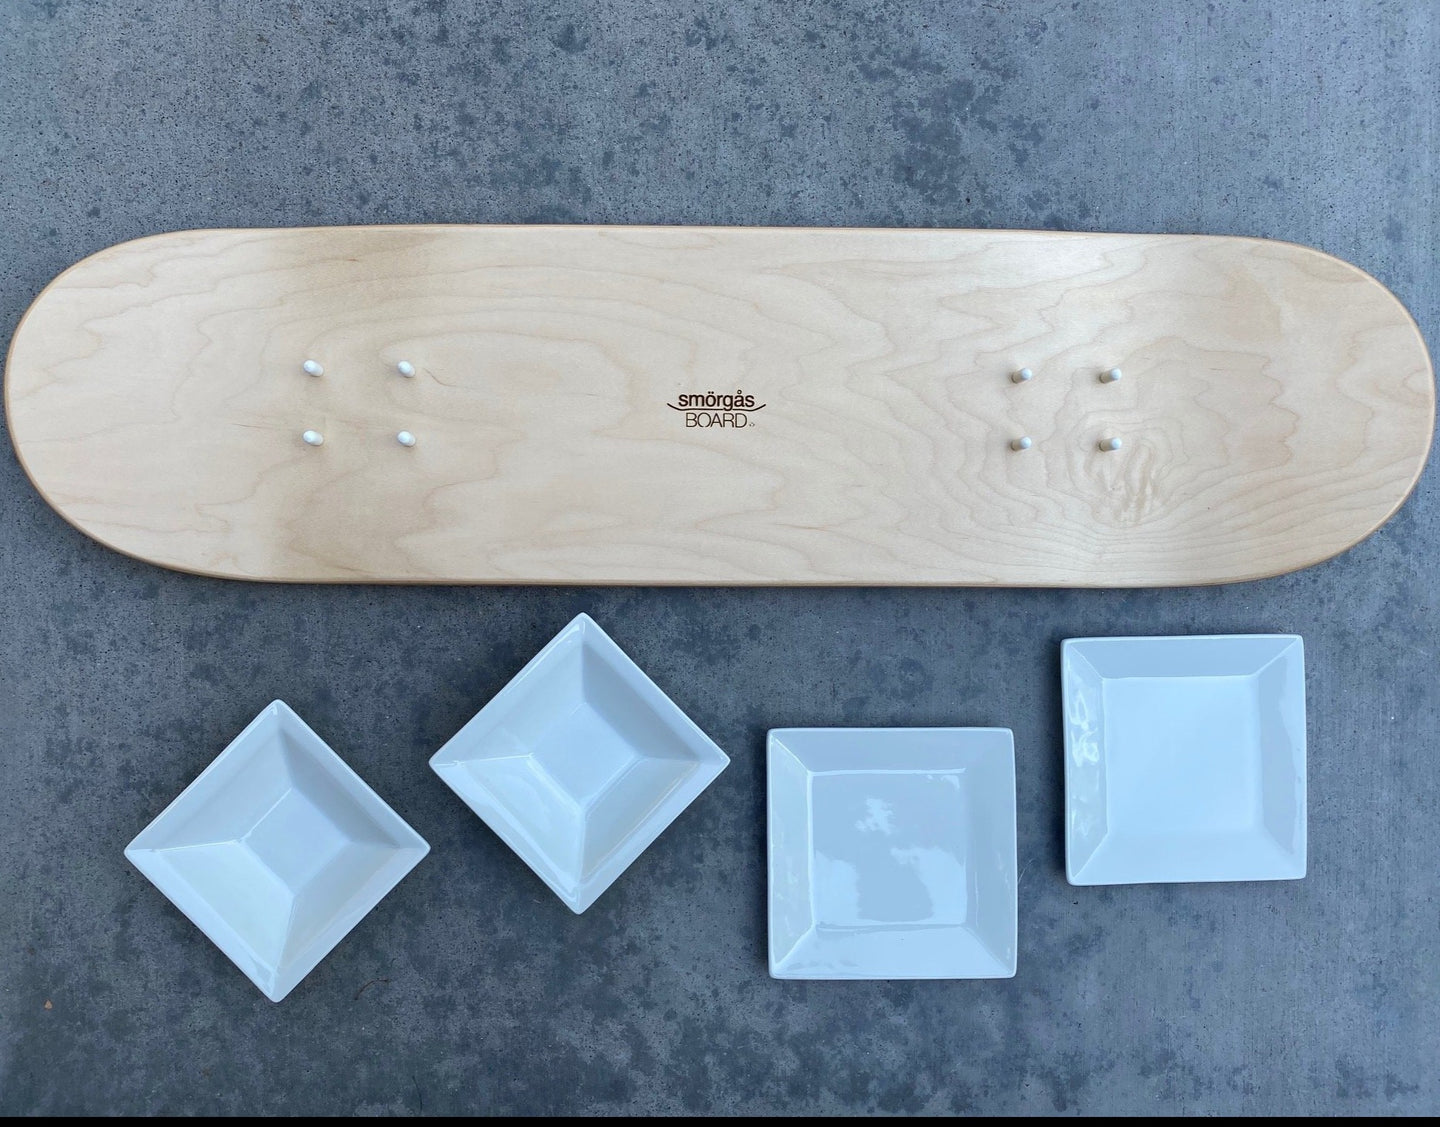 Skateboard Serving Tray- 2 BOWLS, 2 PLATES